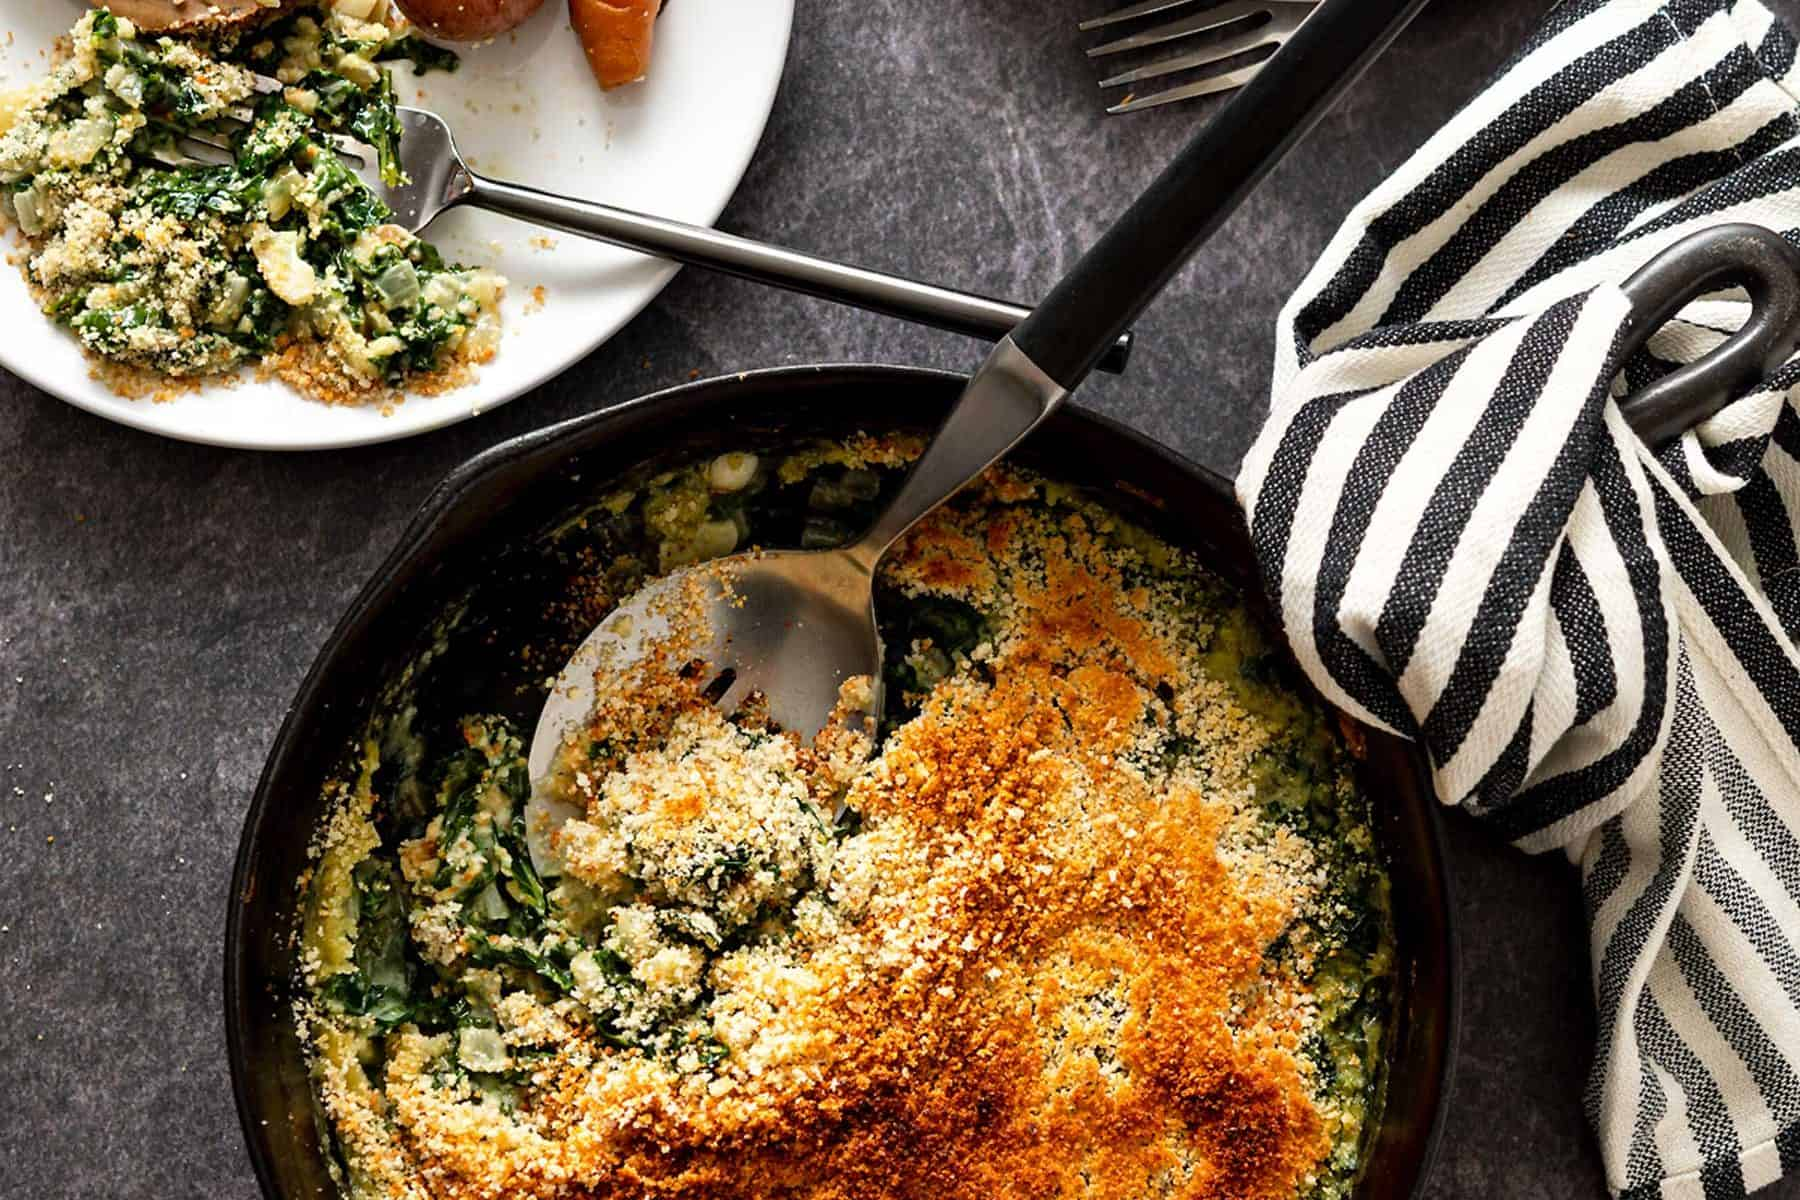 Serving spoon in a cast iron skillet filled with creamed kale next to dinner plates